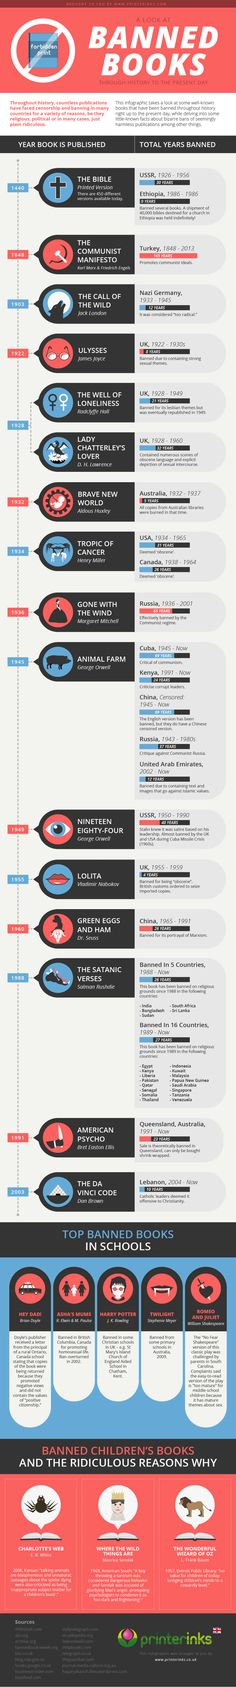 A new infographic from PrinterInks.com examines books that have been banned around the world at different points, and the weird reasons why.